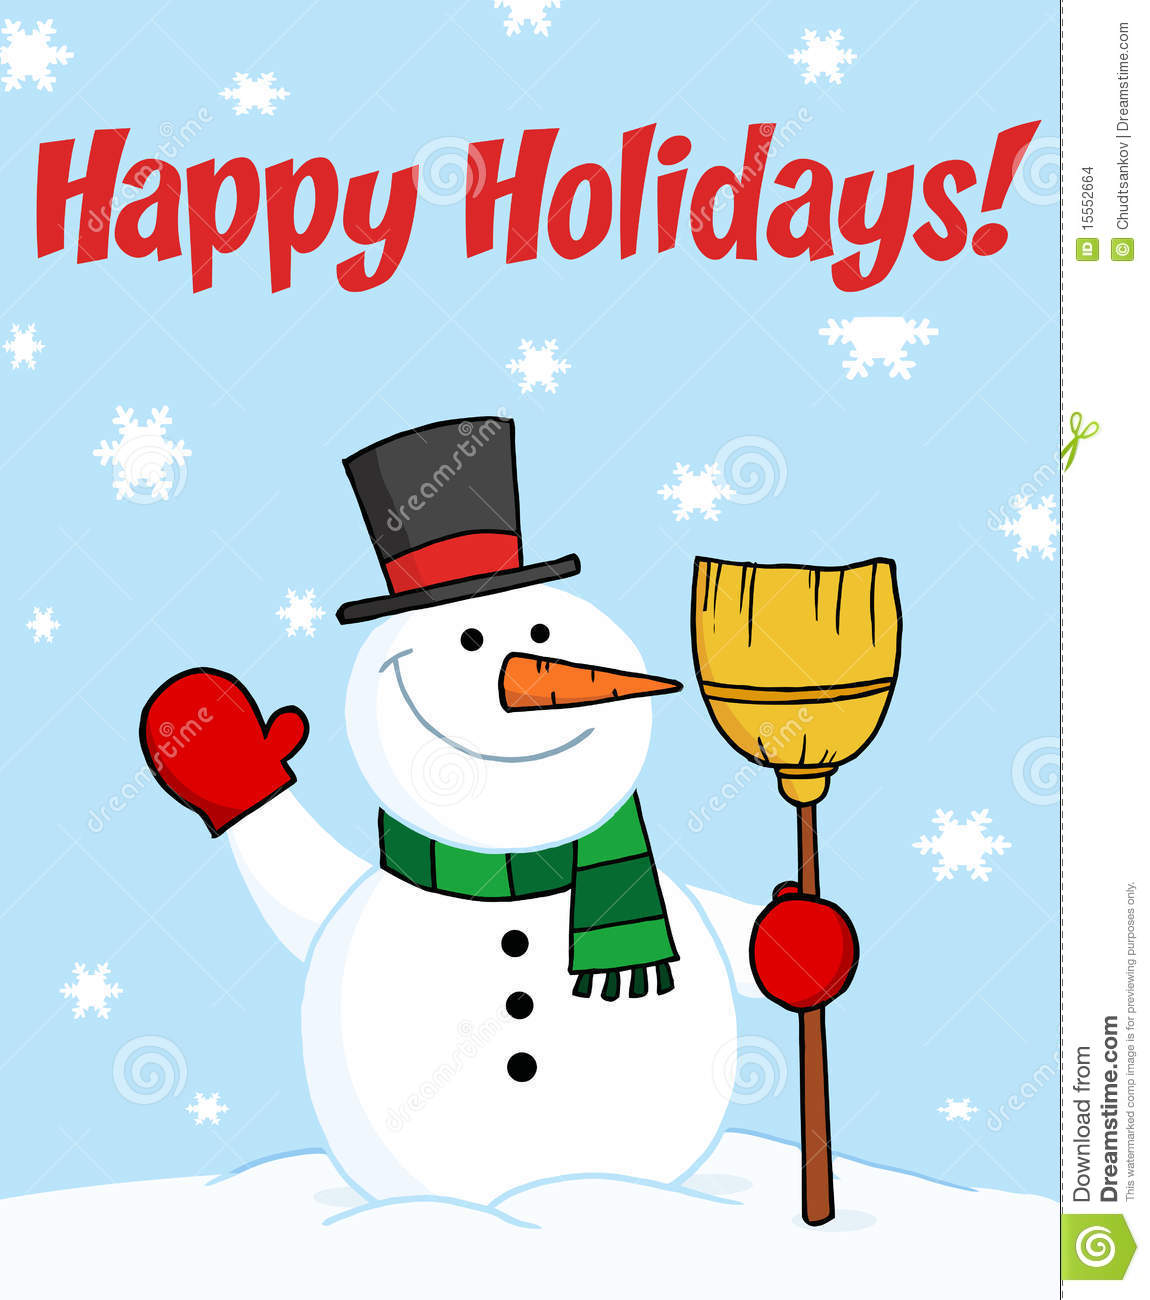 Happy Holidays Greeting With A Snowman Stock Images   Image  15552664